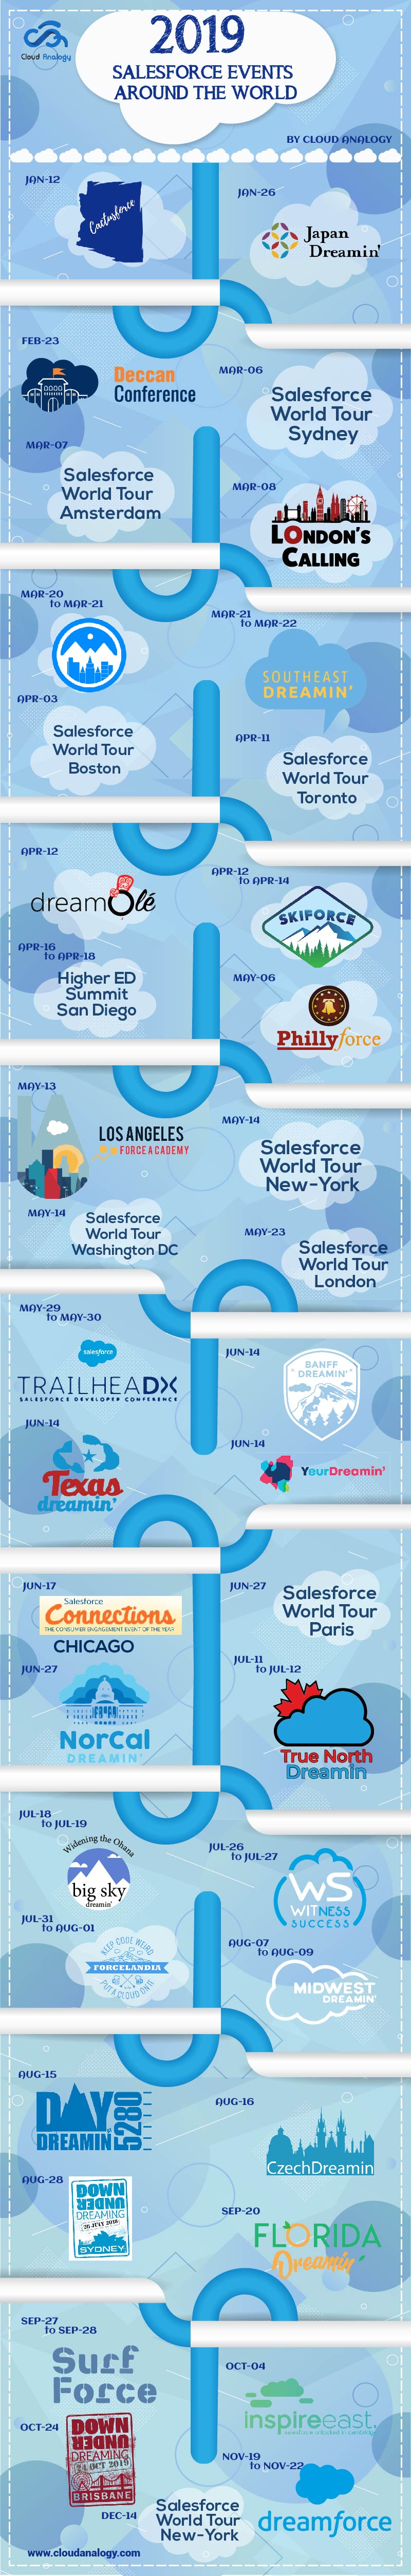 2019 salesforce events around the world-01-min